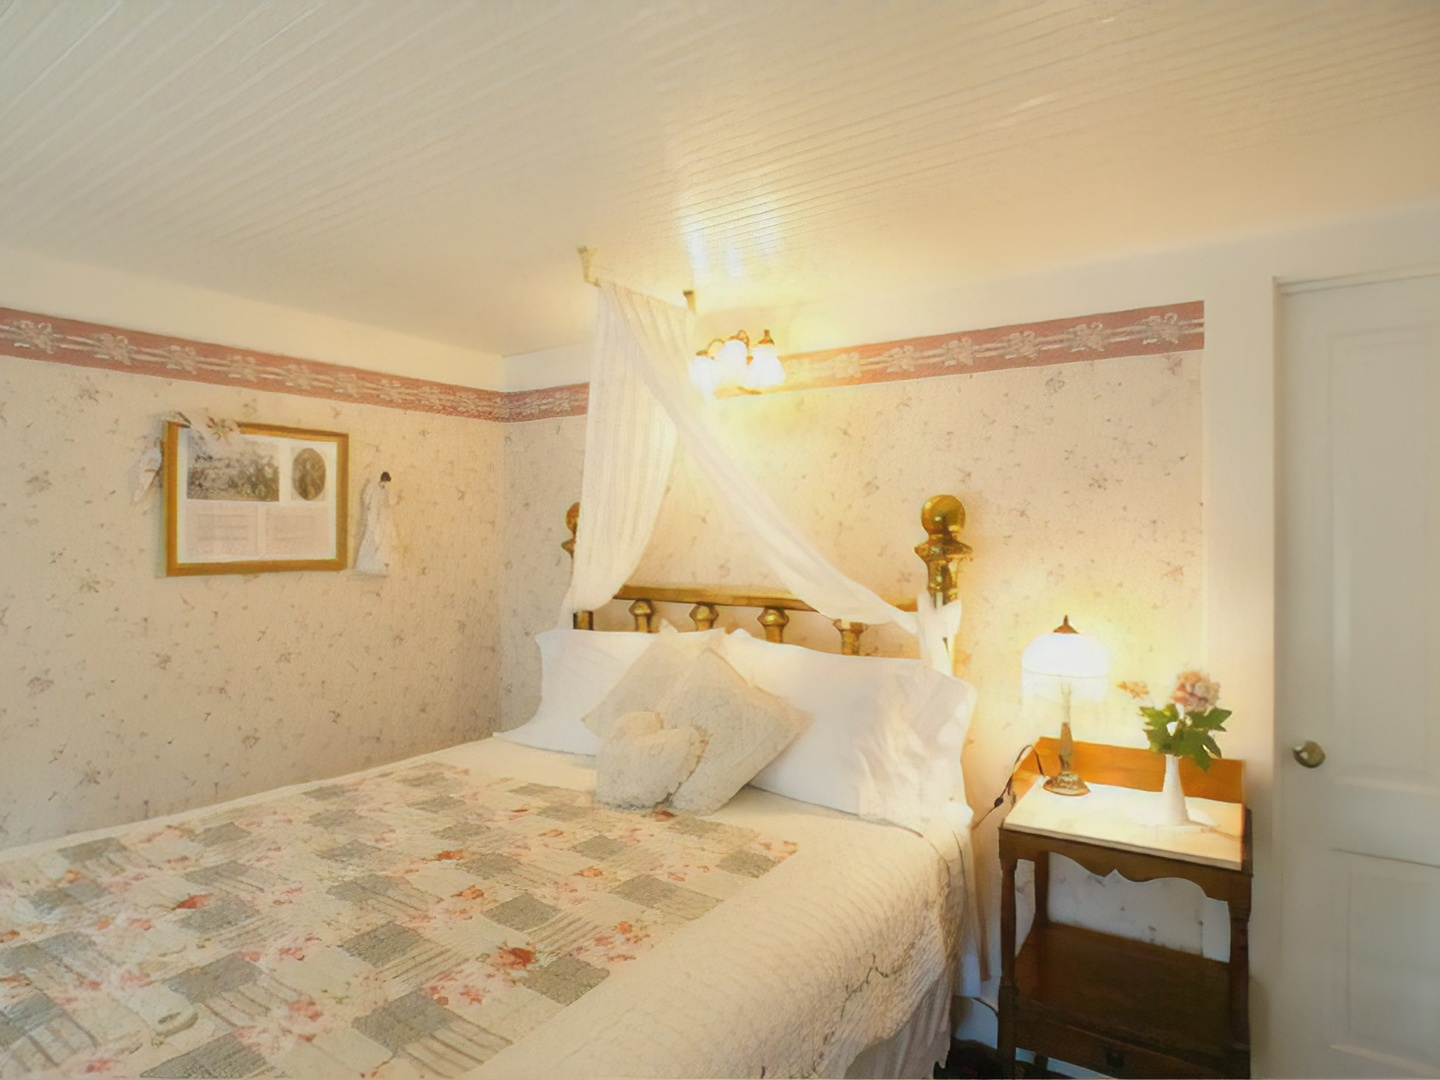 A bedroom with a bed and a mirror at Prospect Historic Hotel Bed and Breakfast Inn.